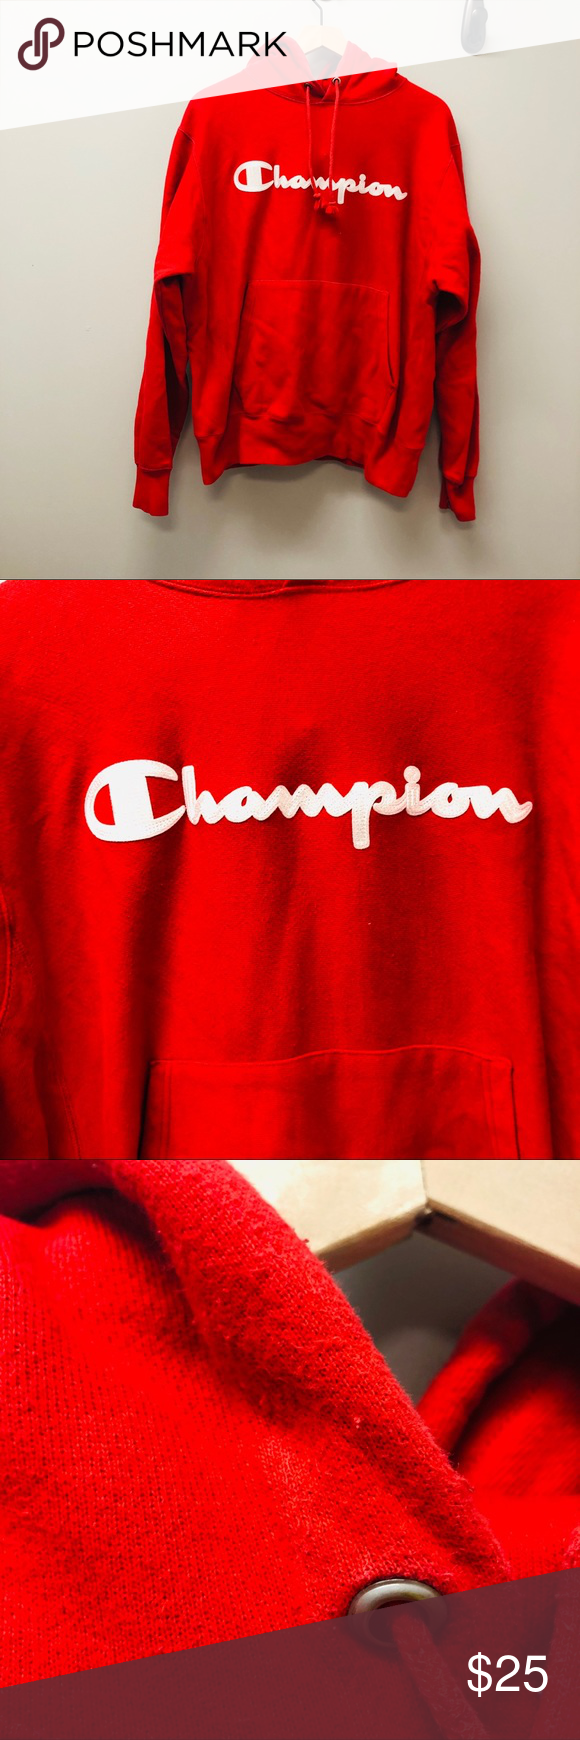 Champion red hoodie Men's medium Red Champion hoodie with white design. Classic, bit oversized hoodie with front pocket. This item is in good condition with slight pilling & fading but otherwise in gently used condition.  I will update listing with measurements soon  Open to offers  Aloha Always!